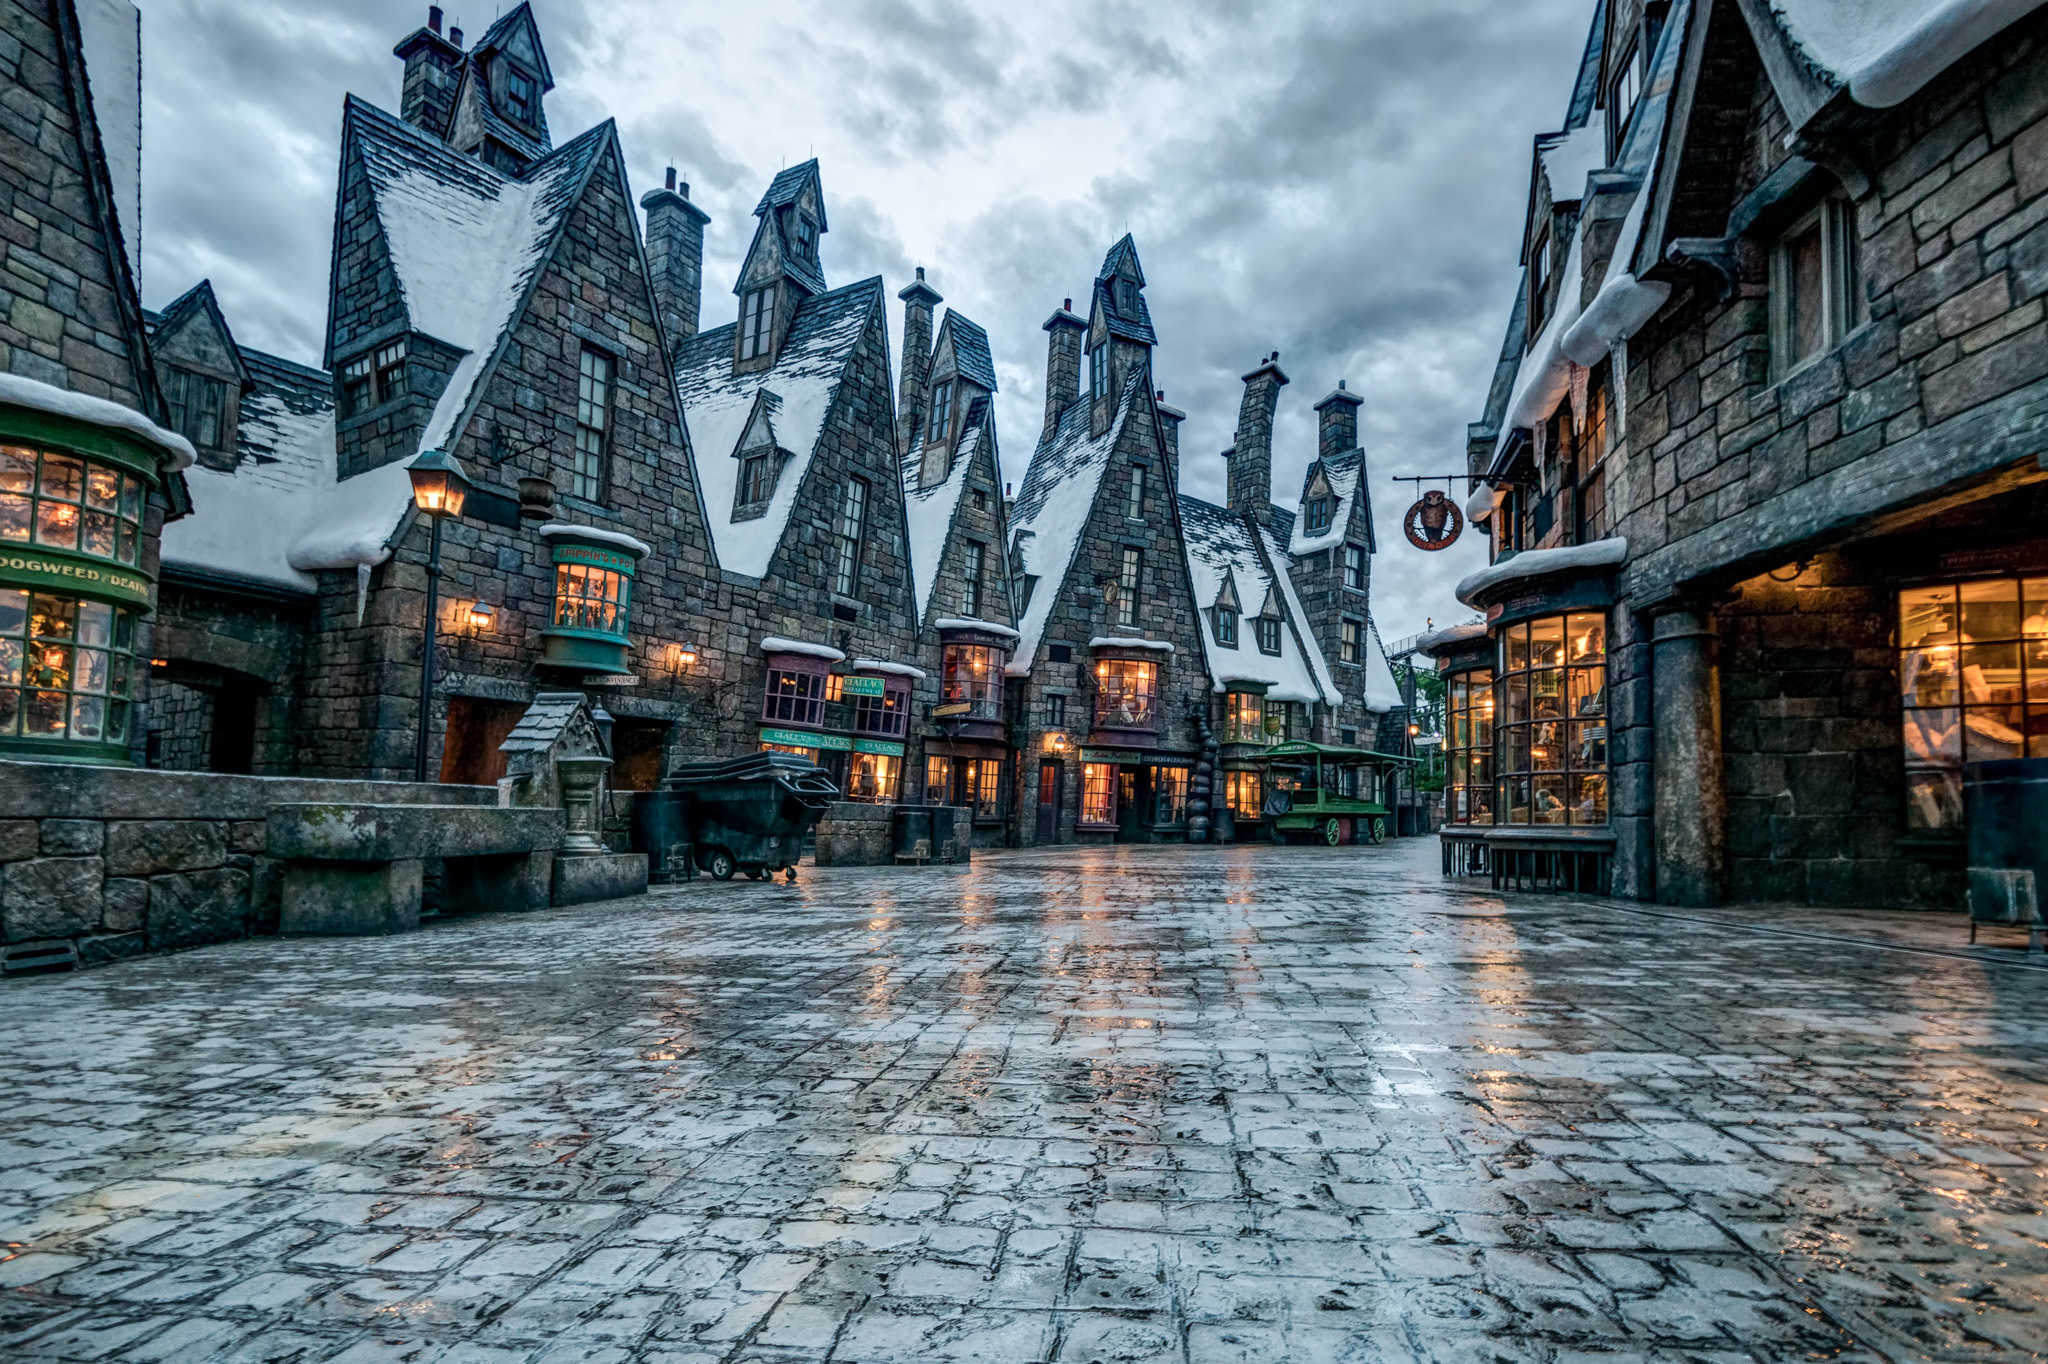 Rainy downtown Diagon Alley with overcast skies